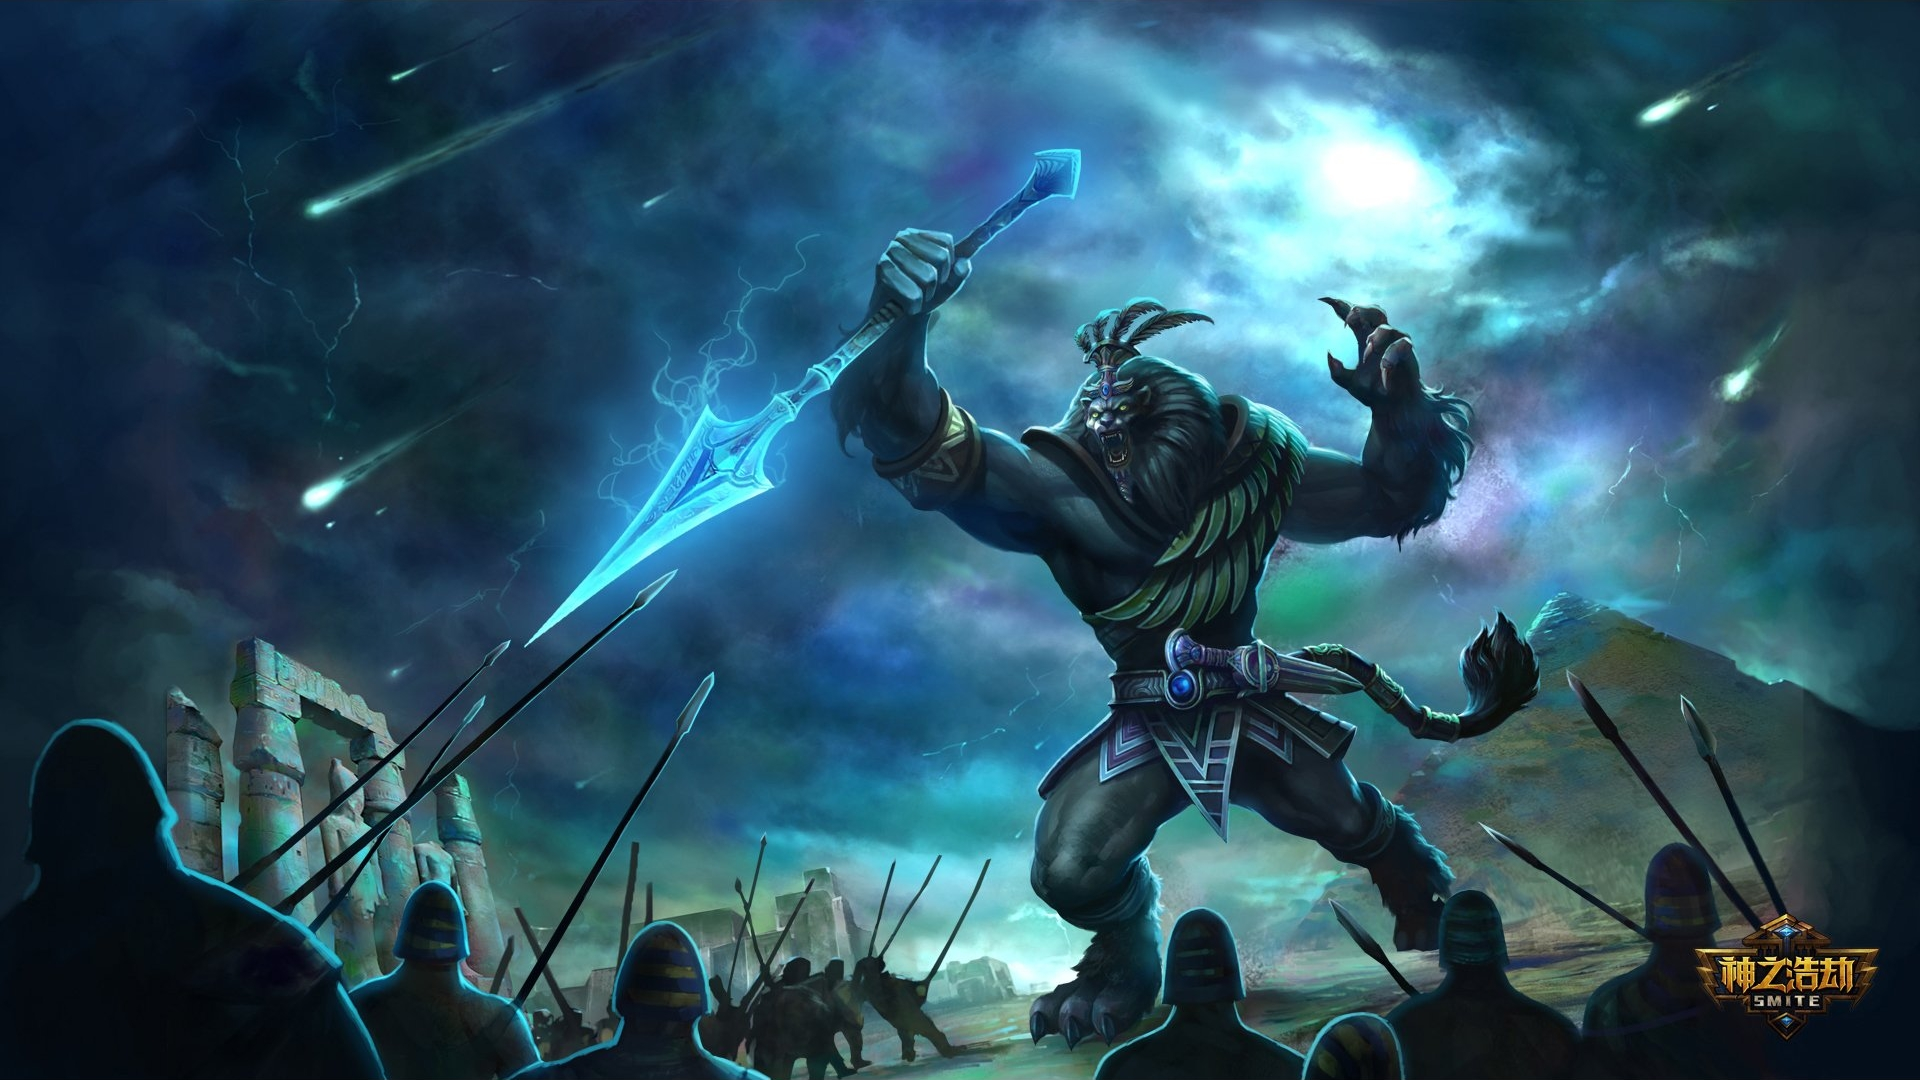 Smite Full HD Wallpaper 1920x1080